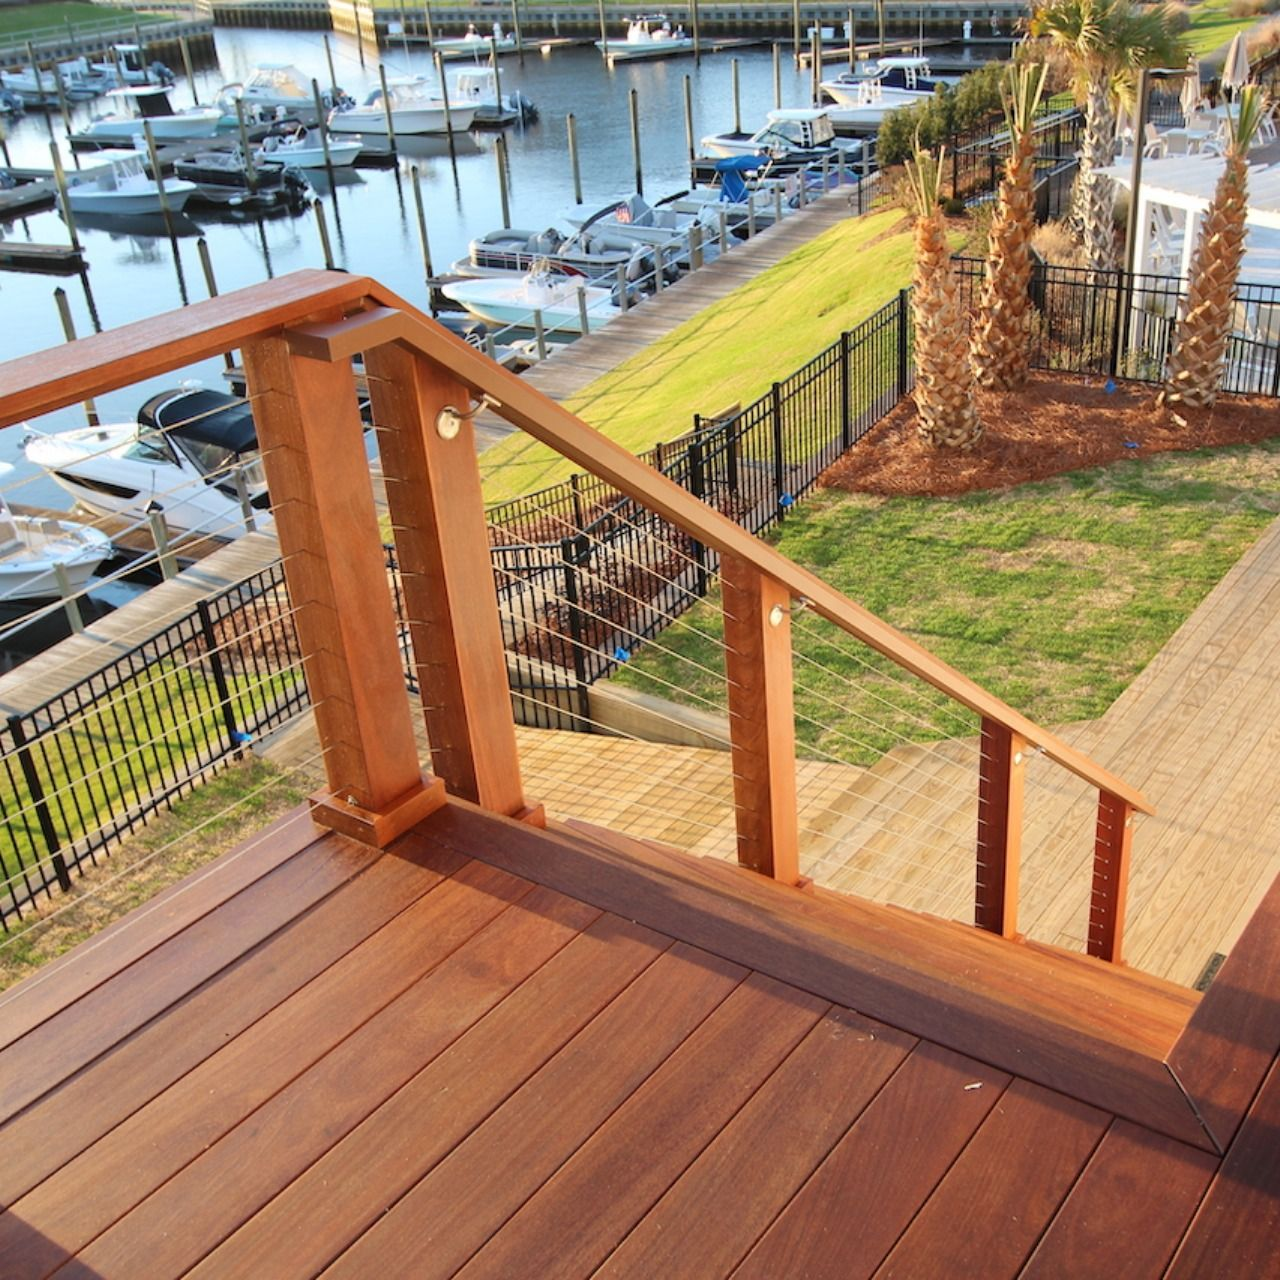 Cable (With images) | Cable railing, Cable railing systems ...